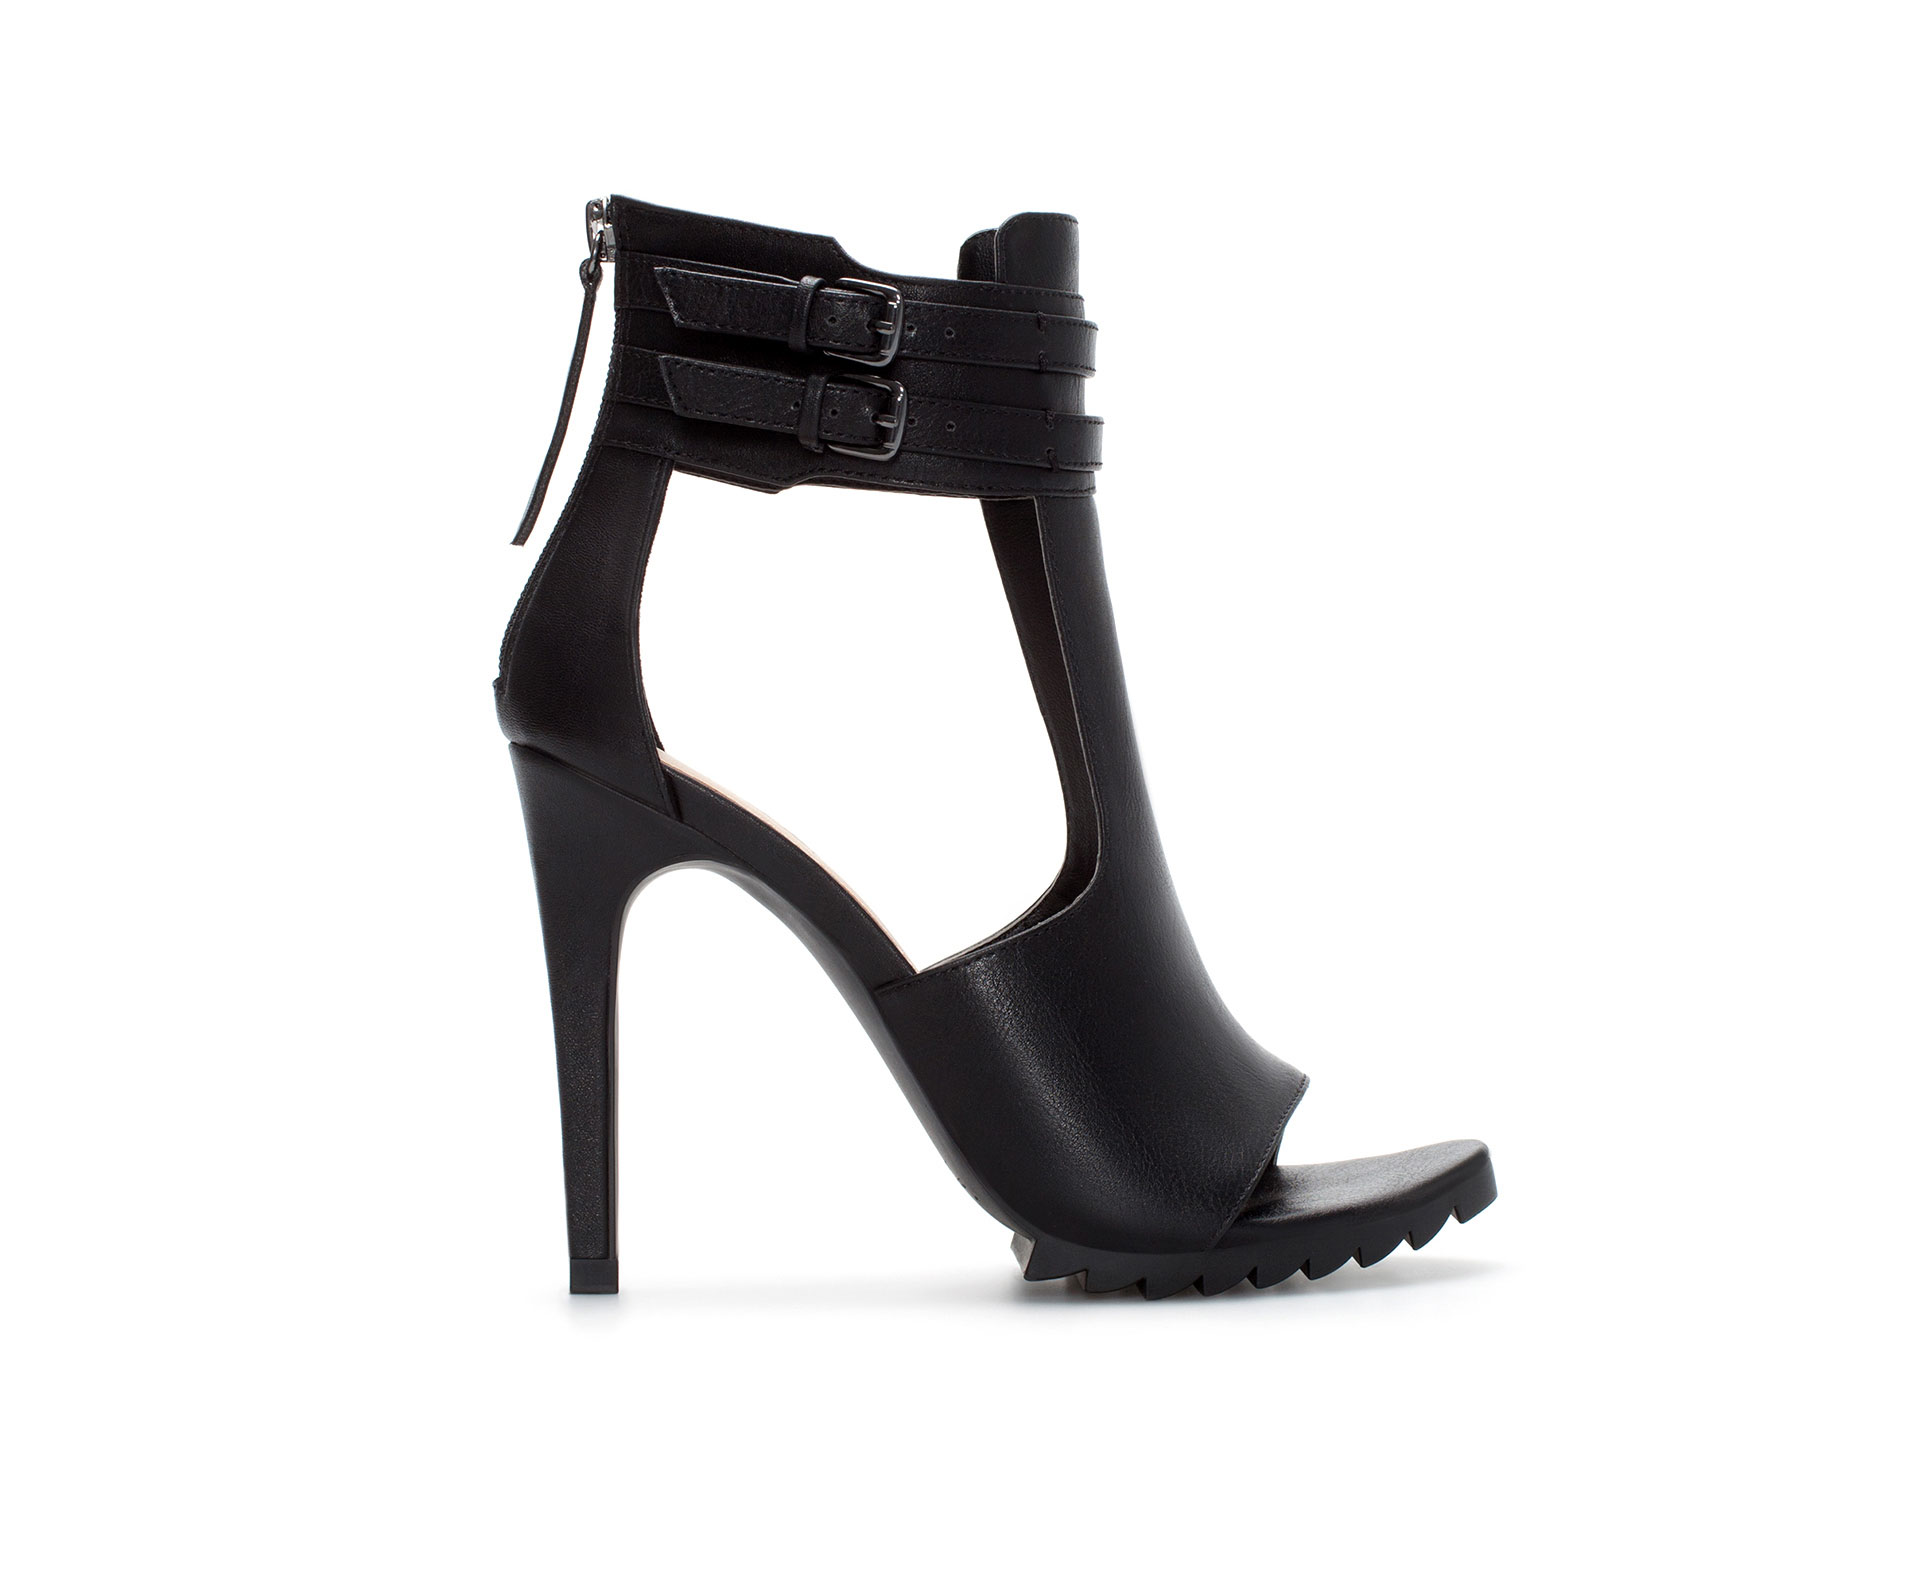 Zara High Heel Tbar Sandal with Buckled Ankle Strap in Black | Lyst